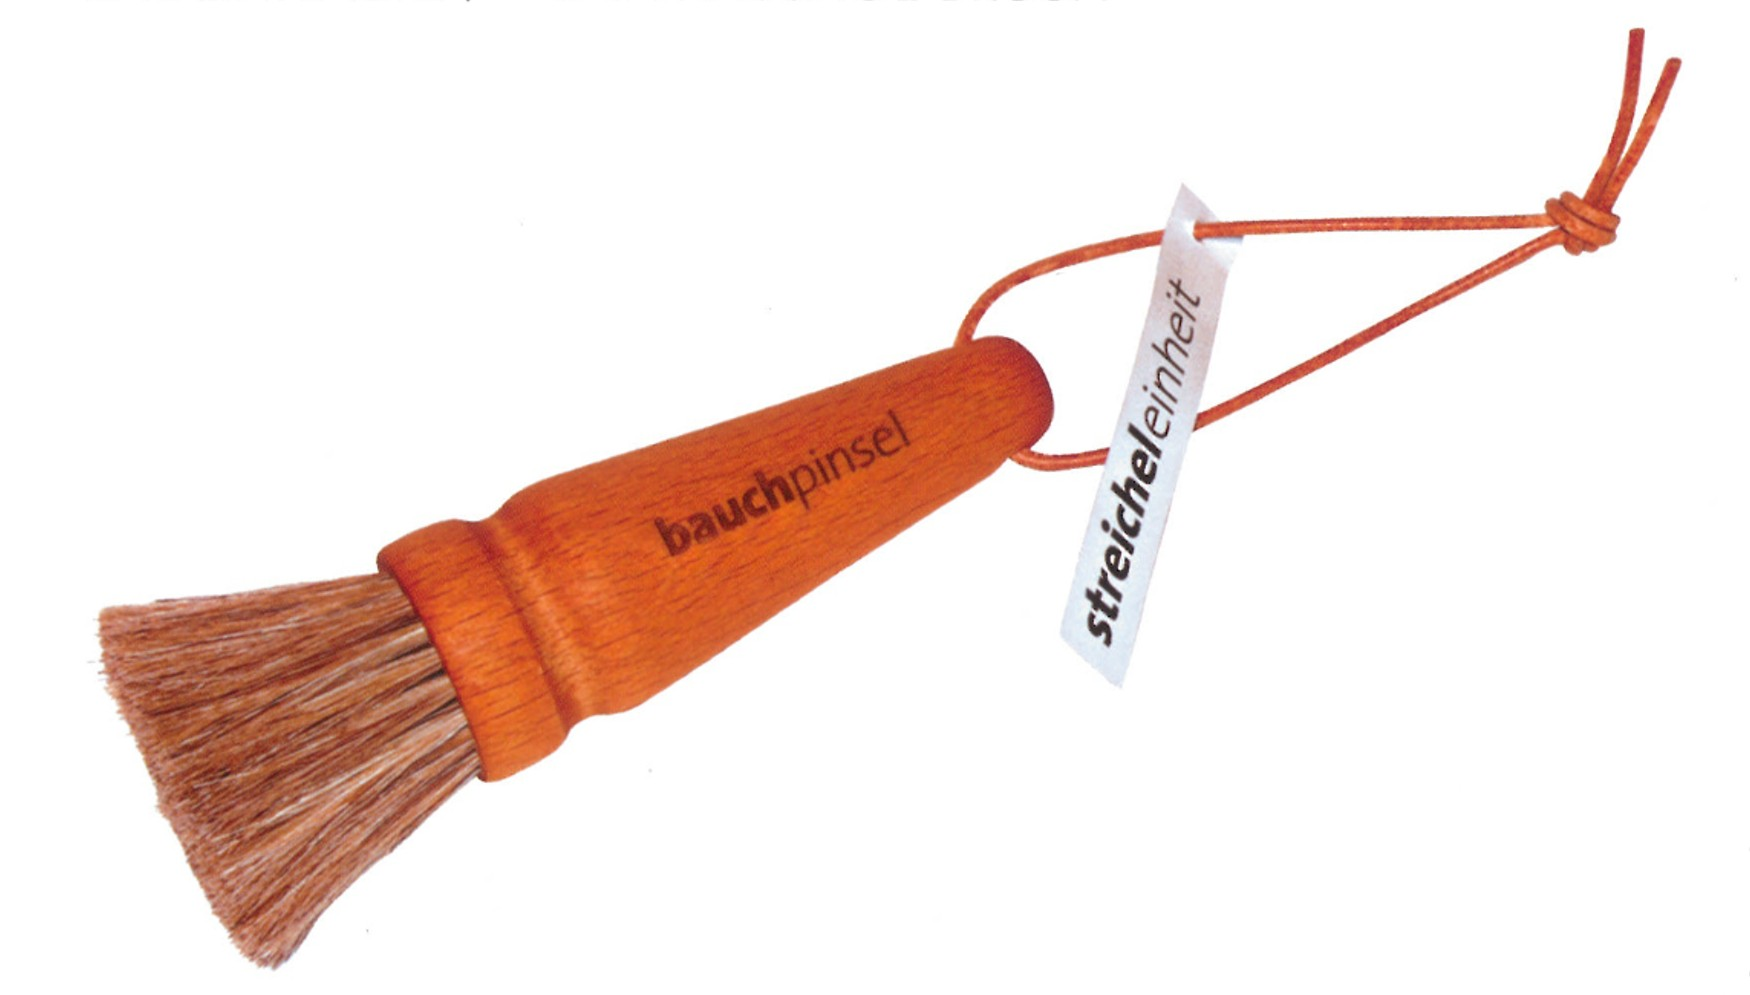 Bauchpinsel Behandlungs-Set